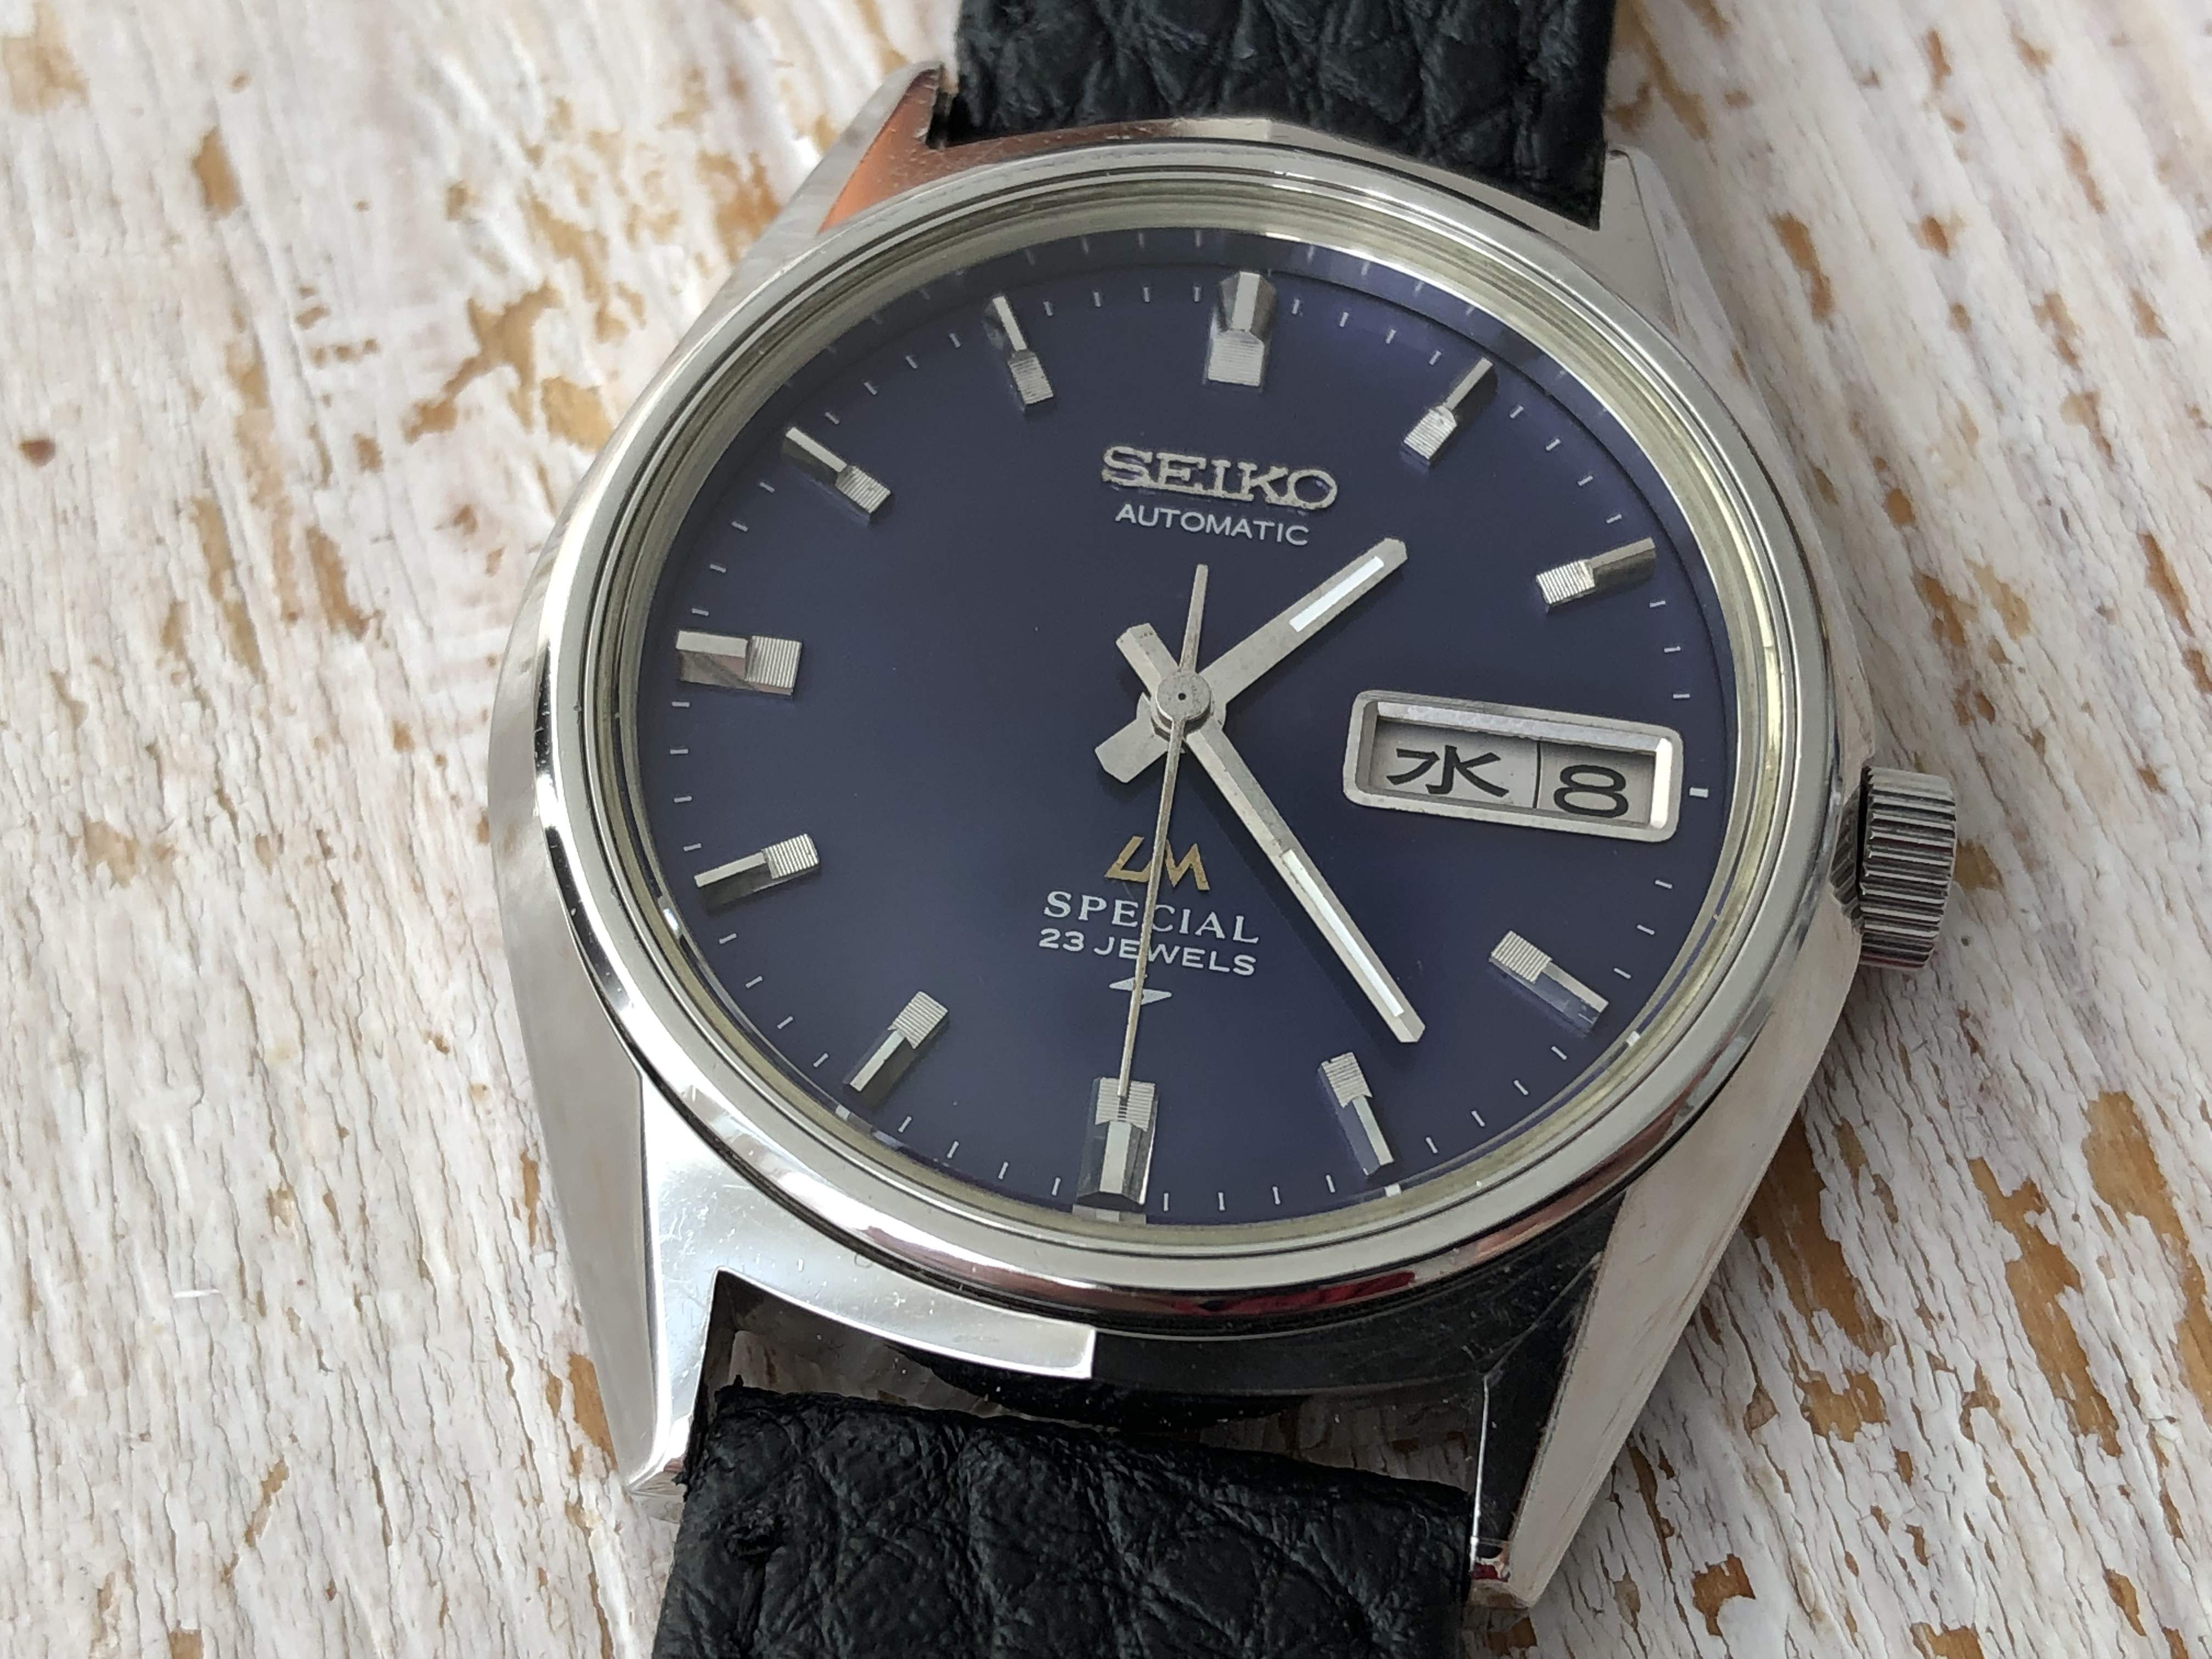 Seiko Lord-Matic Special 5216-7080 (Sold)